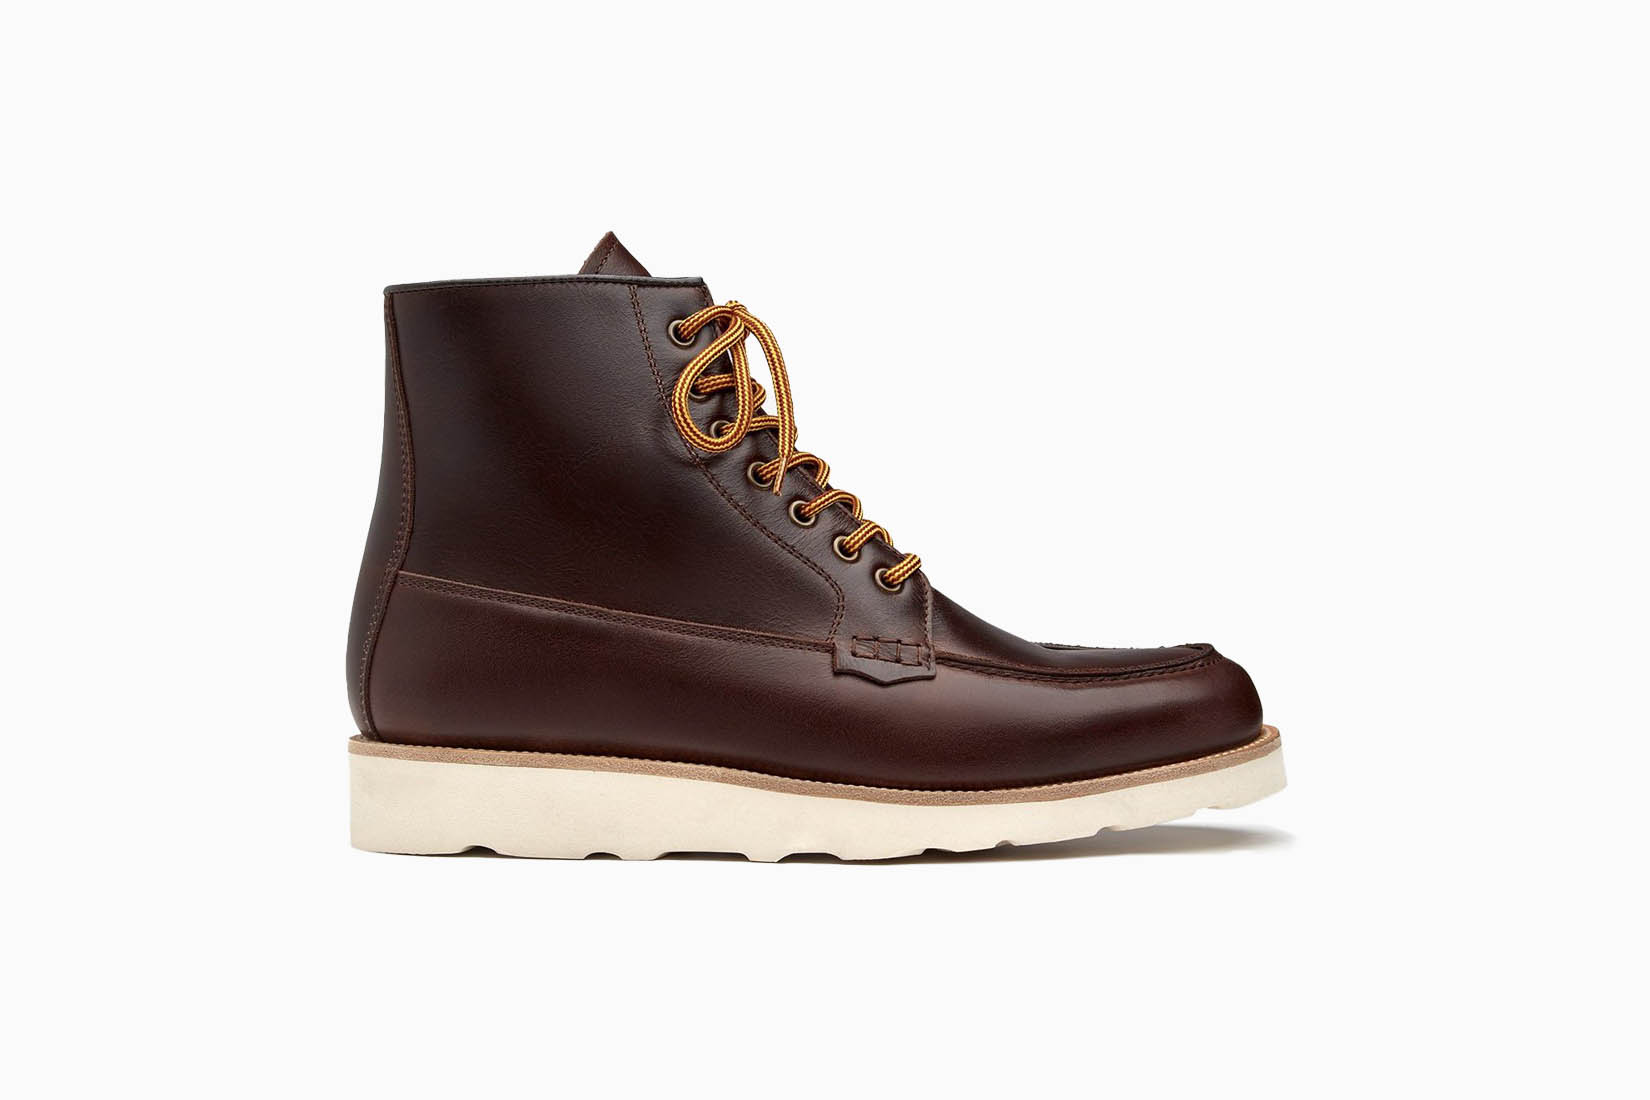 best shoes for standing all day men oliver cabell review Luxe Digital